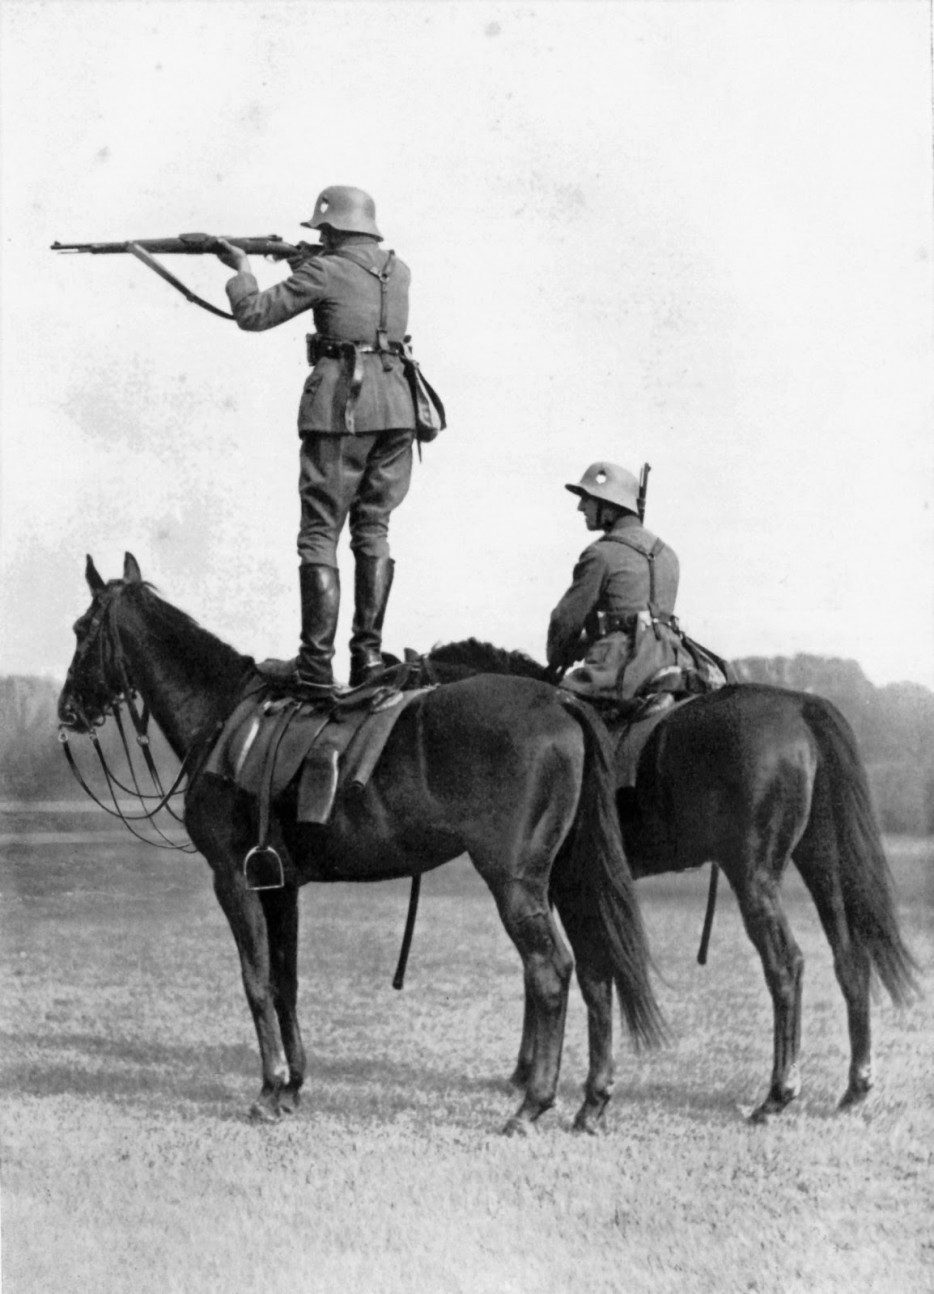 A%20German%20soldier%20firing%20a%20gun%20from%20the%20back%20of%20his%20horse.%20%5B1939%5D